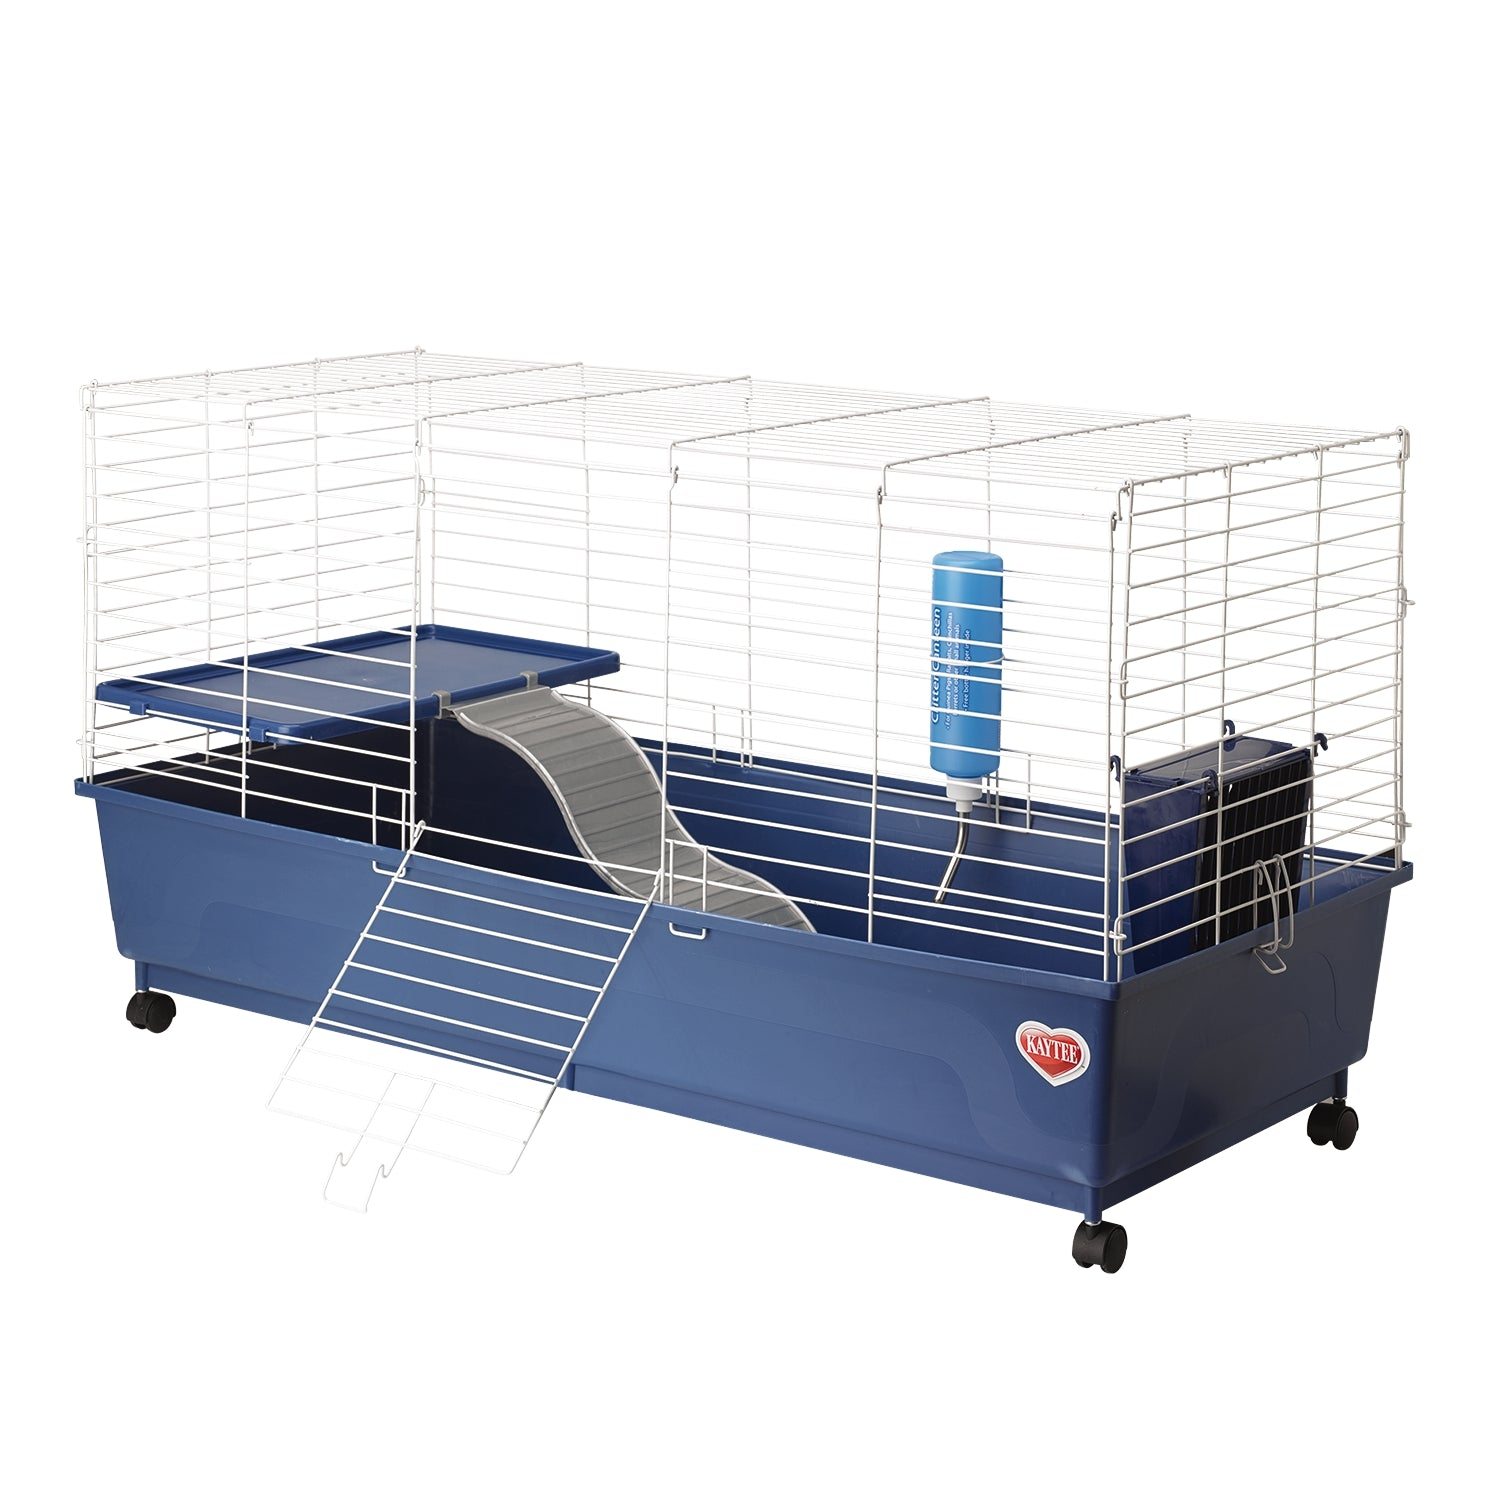 Kaytee My First Home Deluxe Guinea Pig 2-Level Cage with Wheels